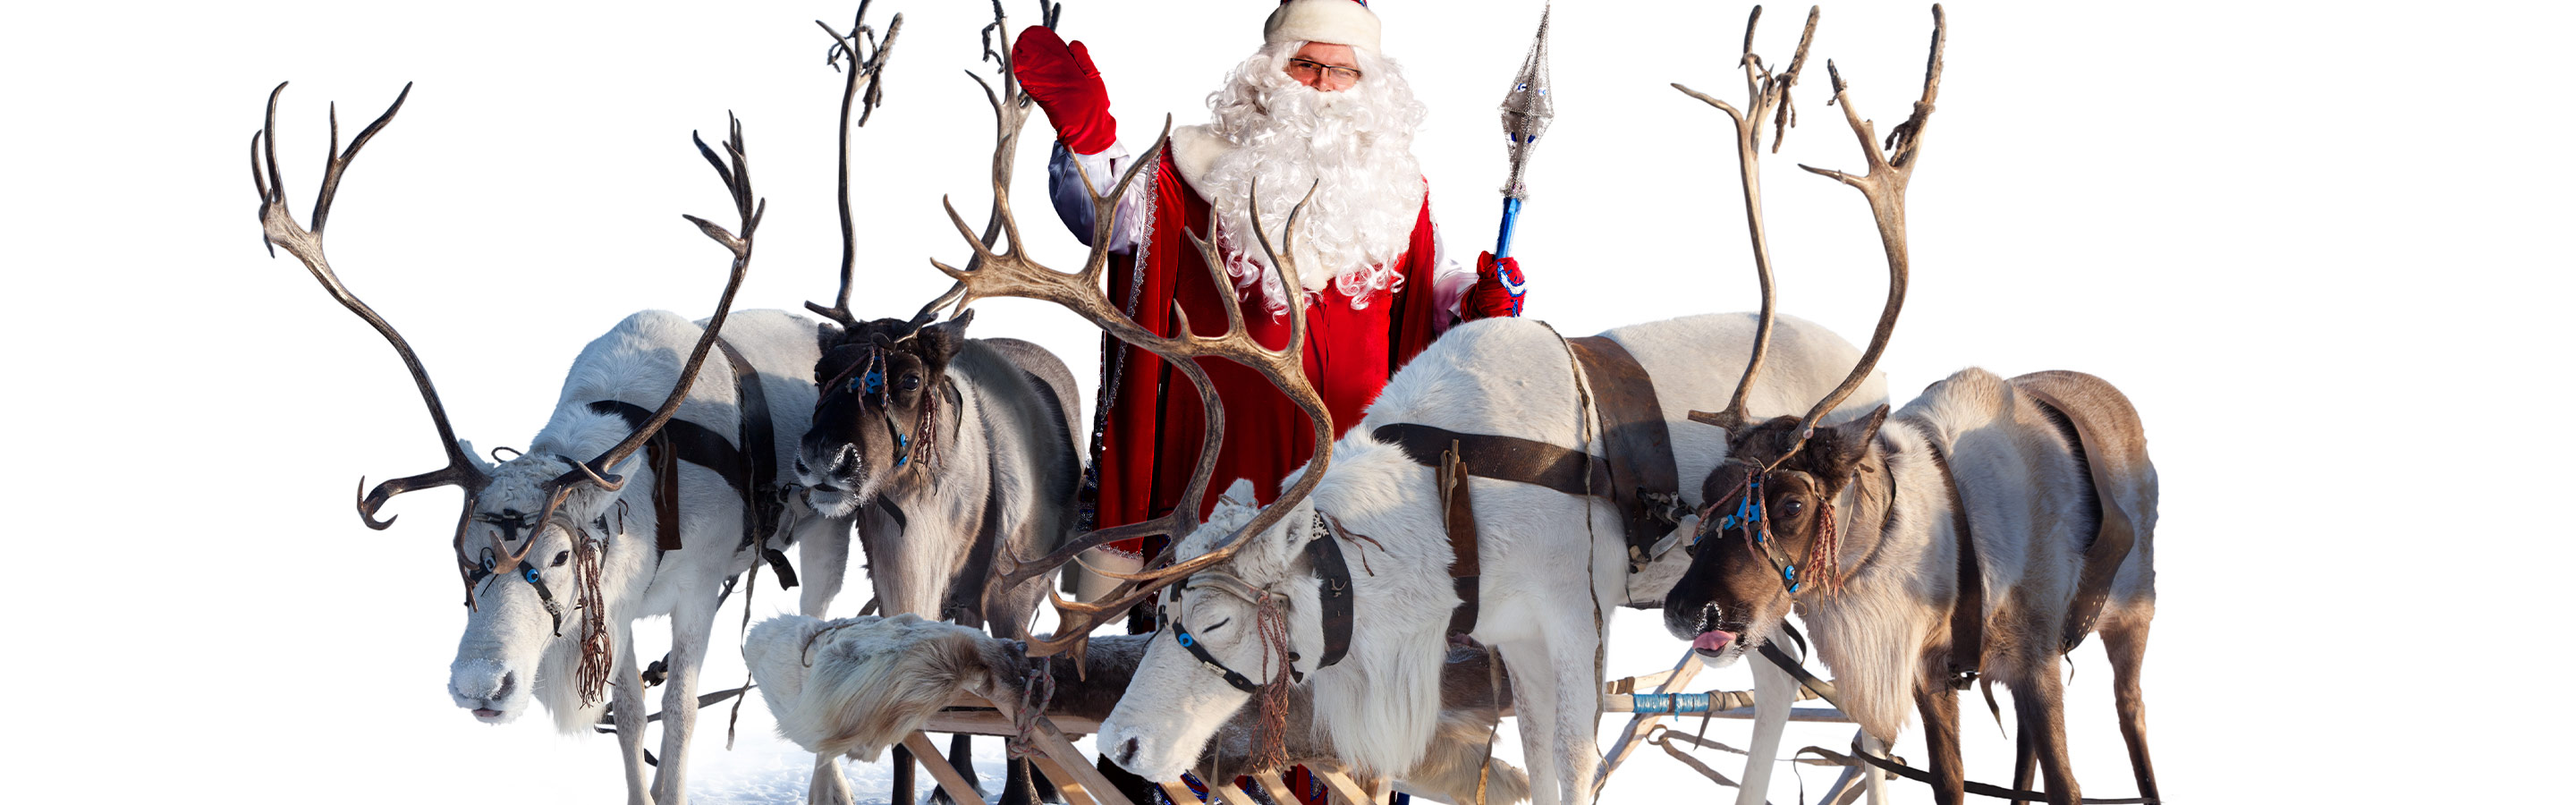 Santa stands with his reindeer